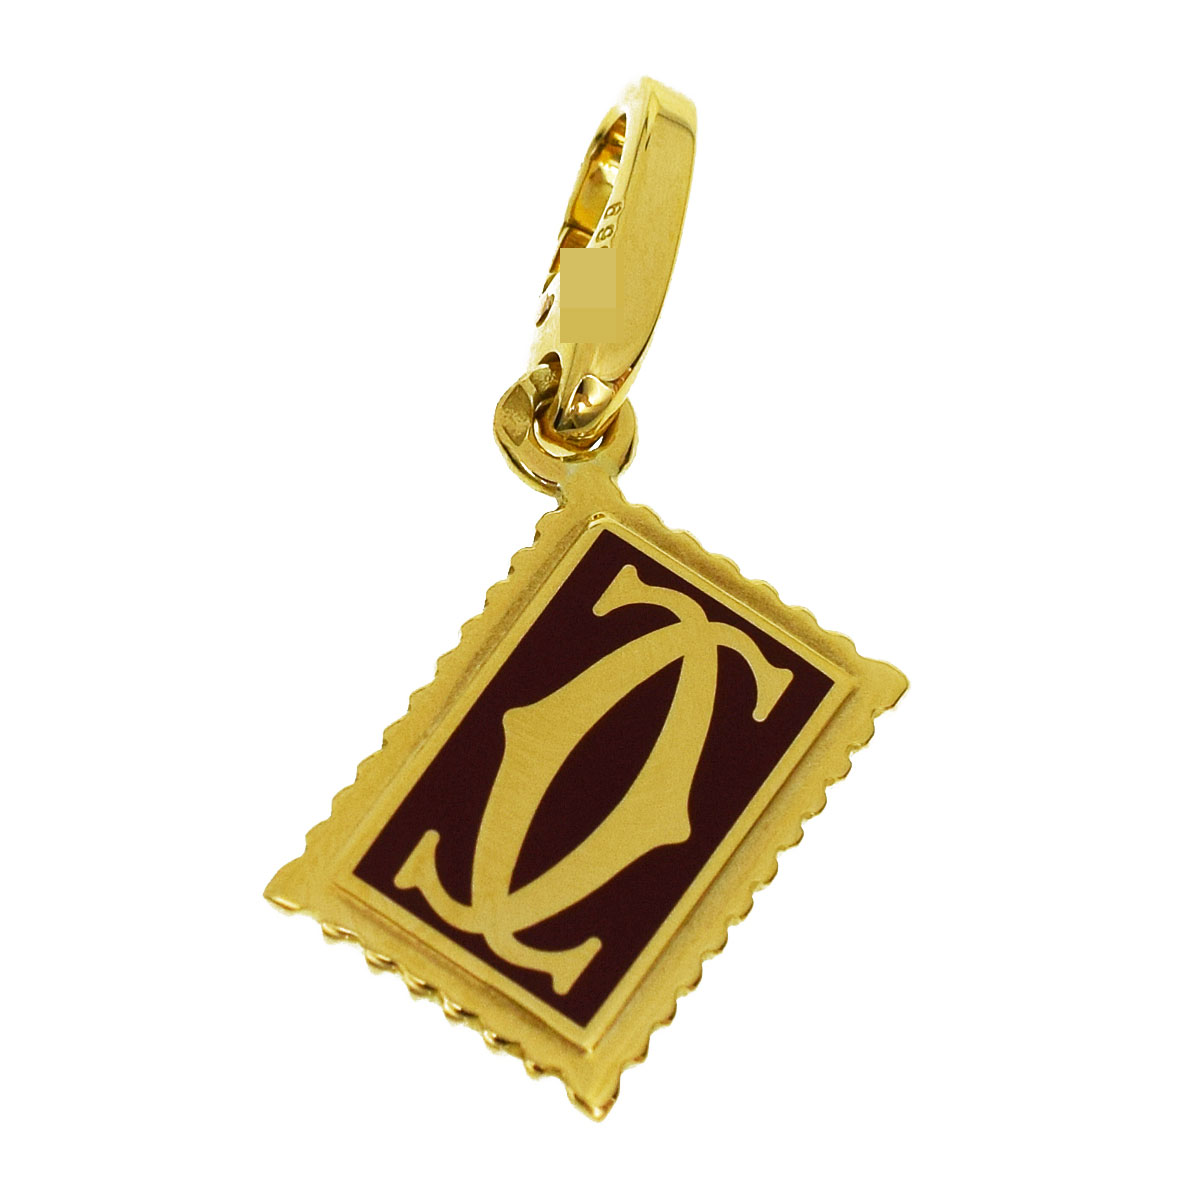 Cartier Cartier red lacquer stamp 2C charm 750 K18 YG yellow gold stamp top  pendant 30861203